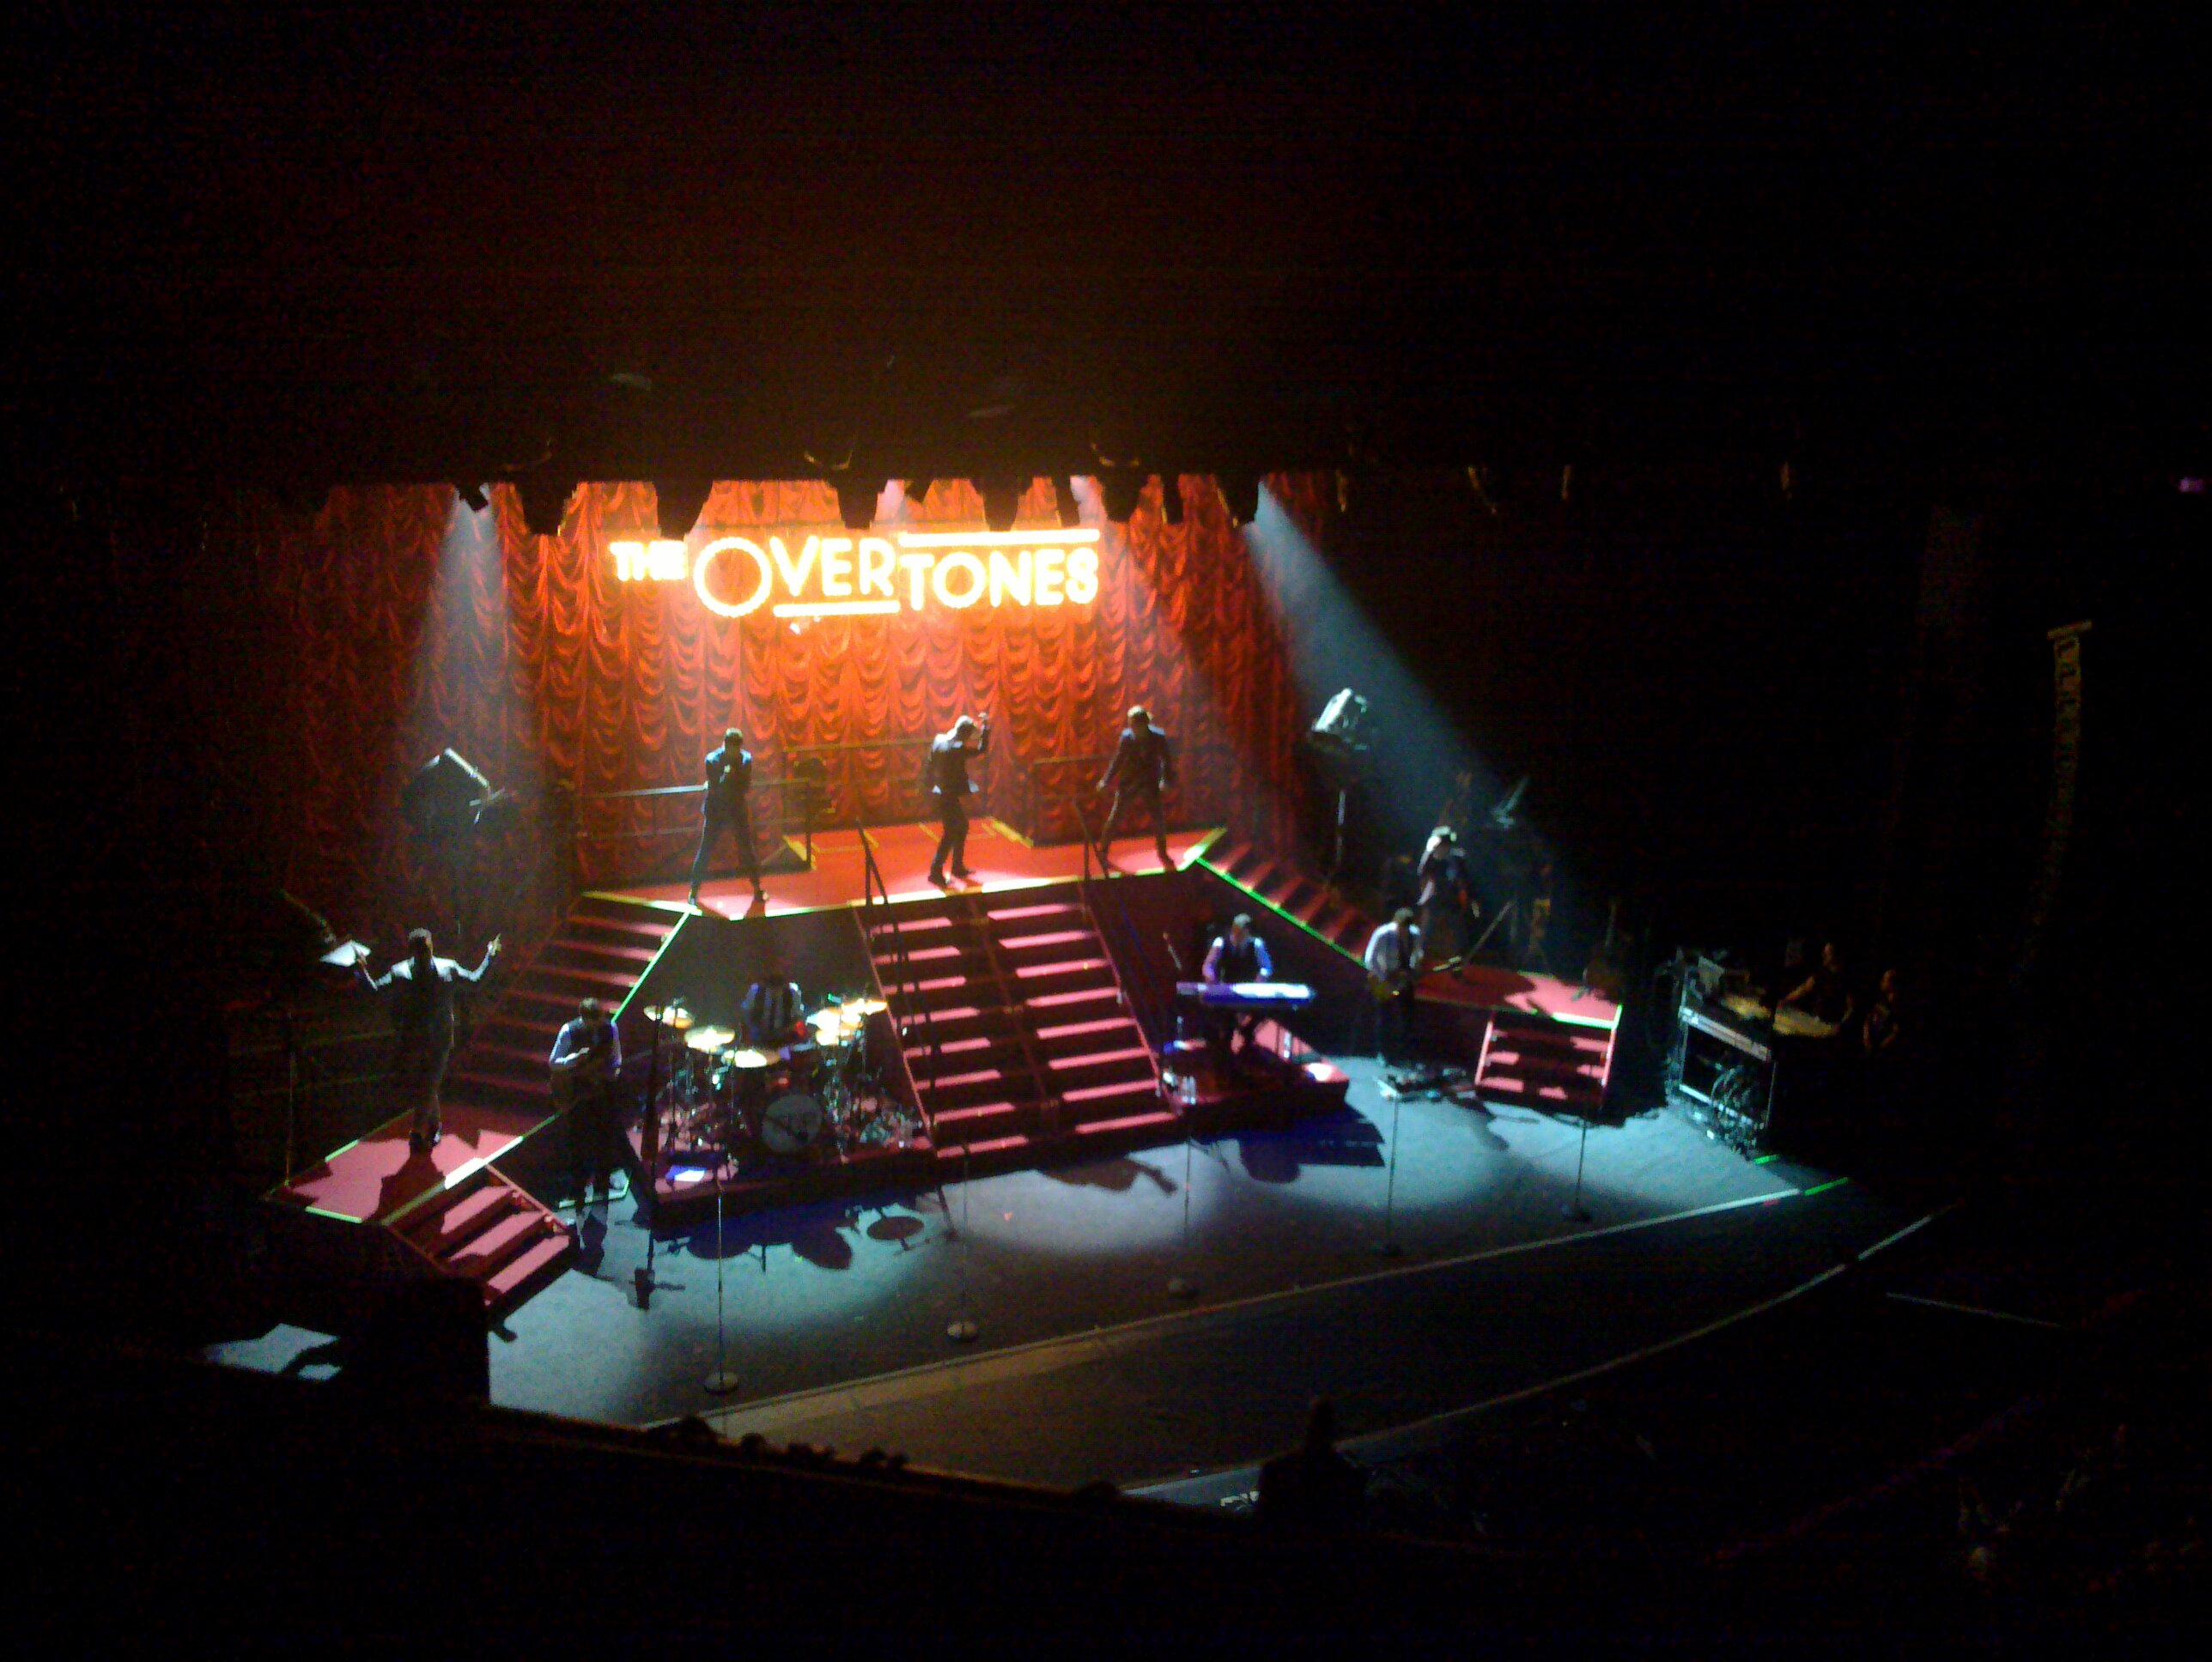 The Overtones @ London Palladium